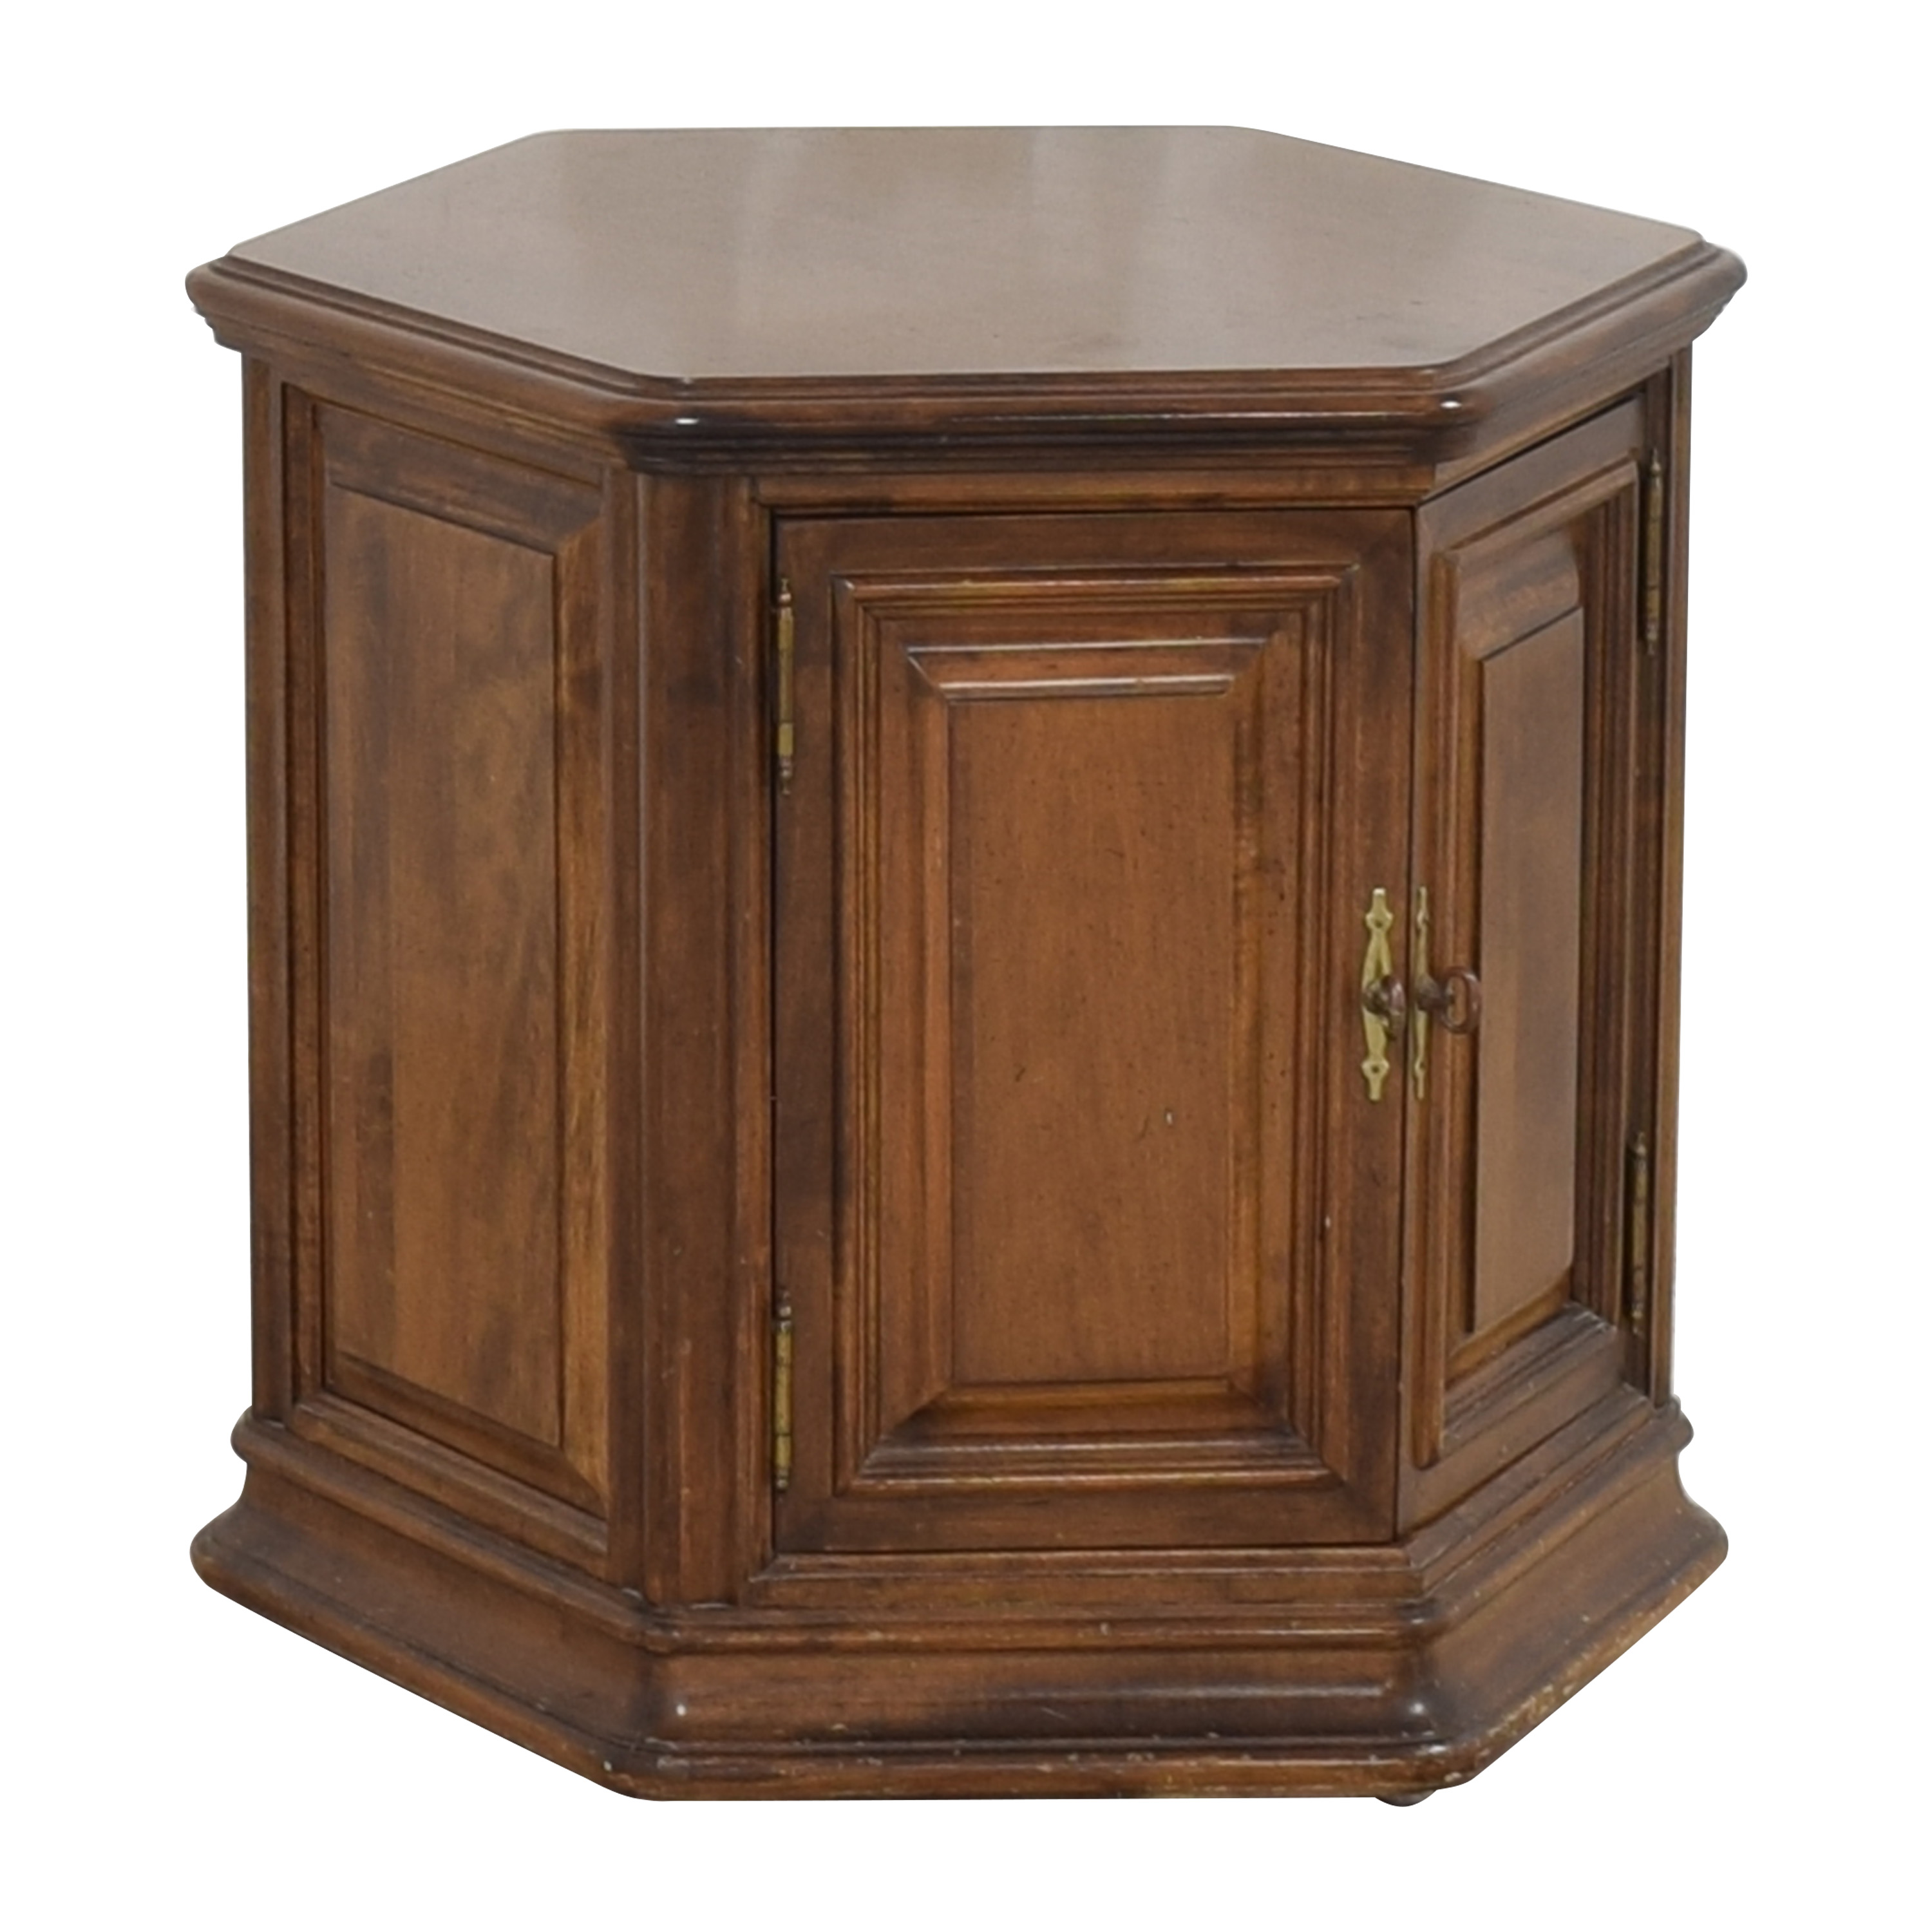 Ethan Allen Ethan Allen Accent Table with Cabinet used